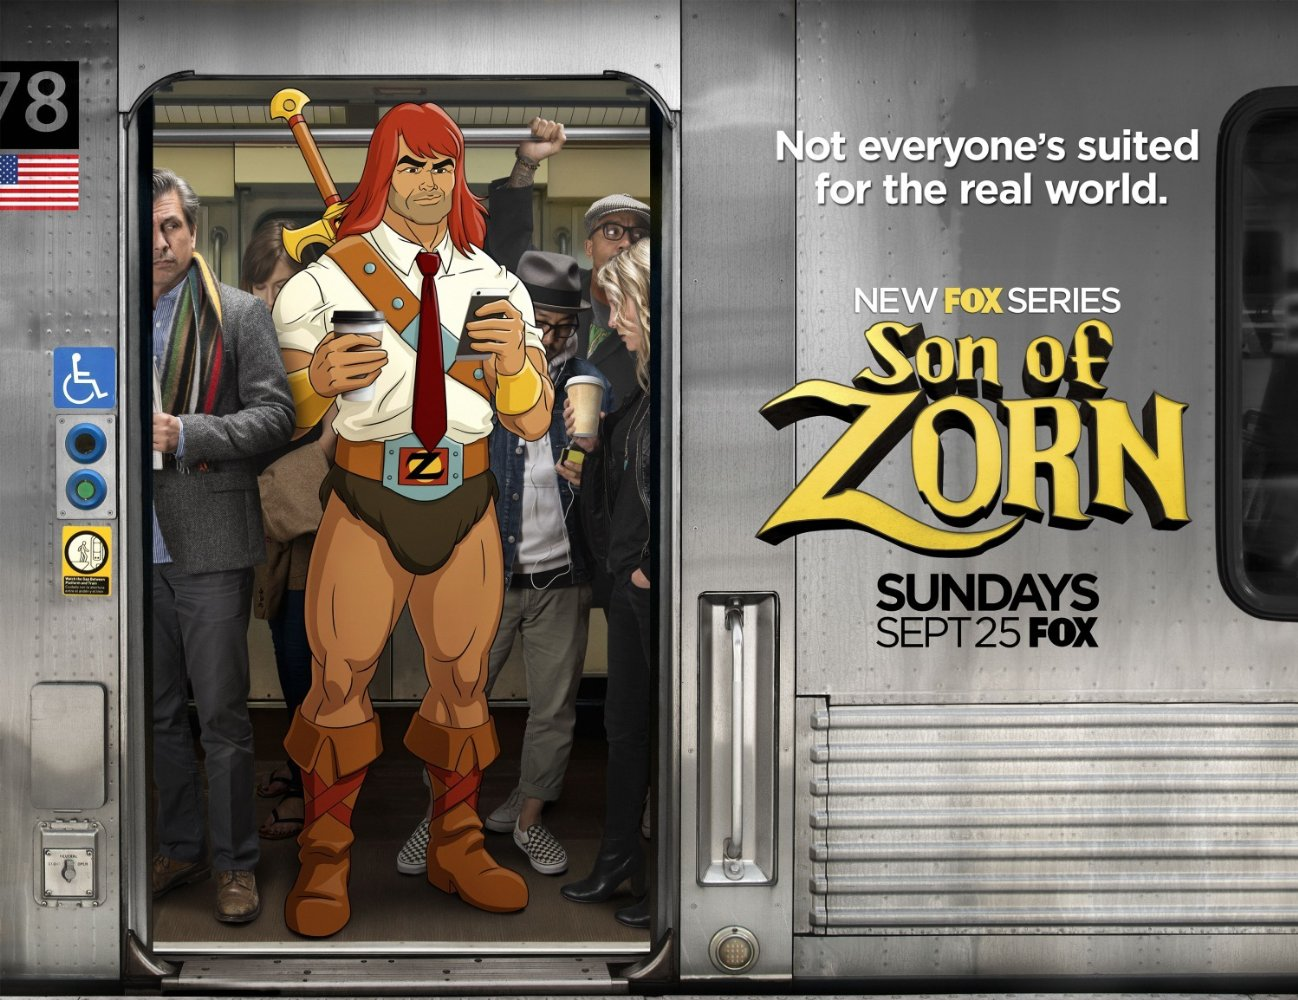 Son of Zorn (1)